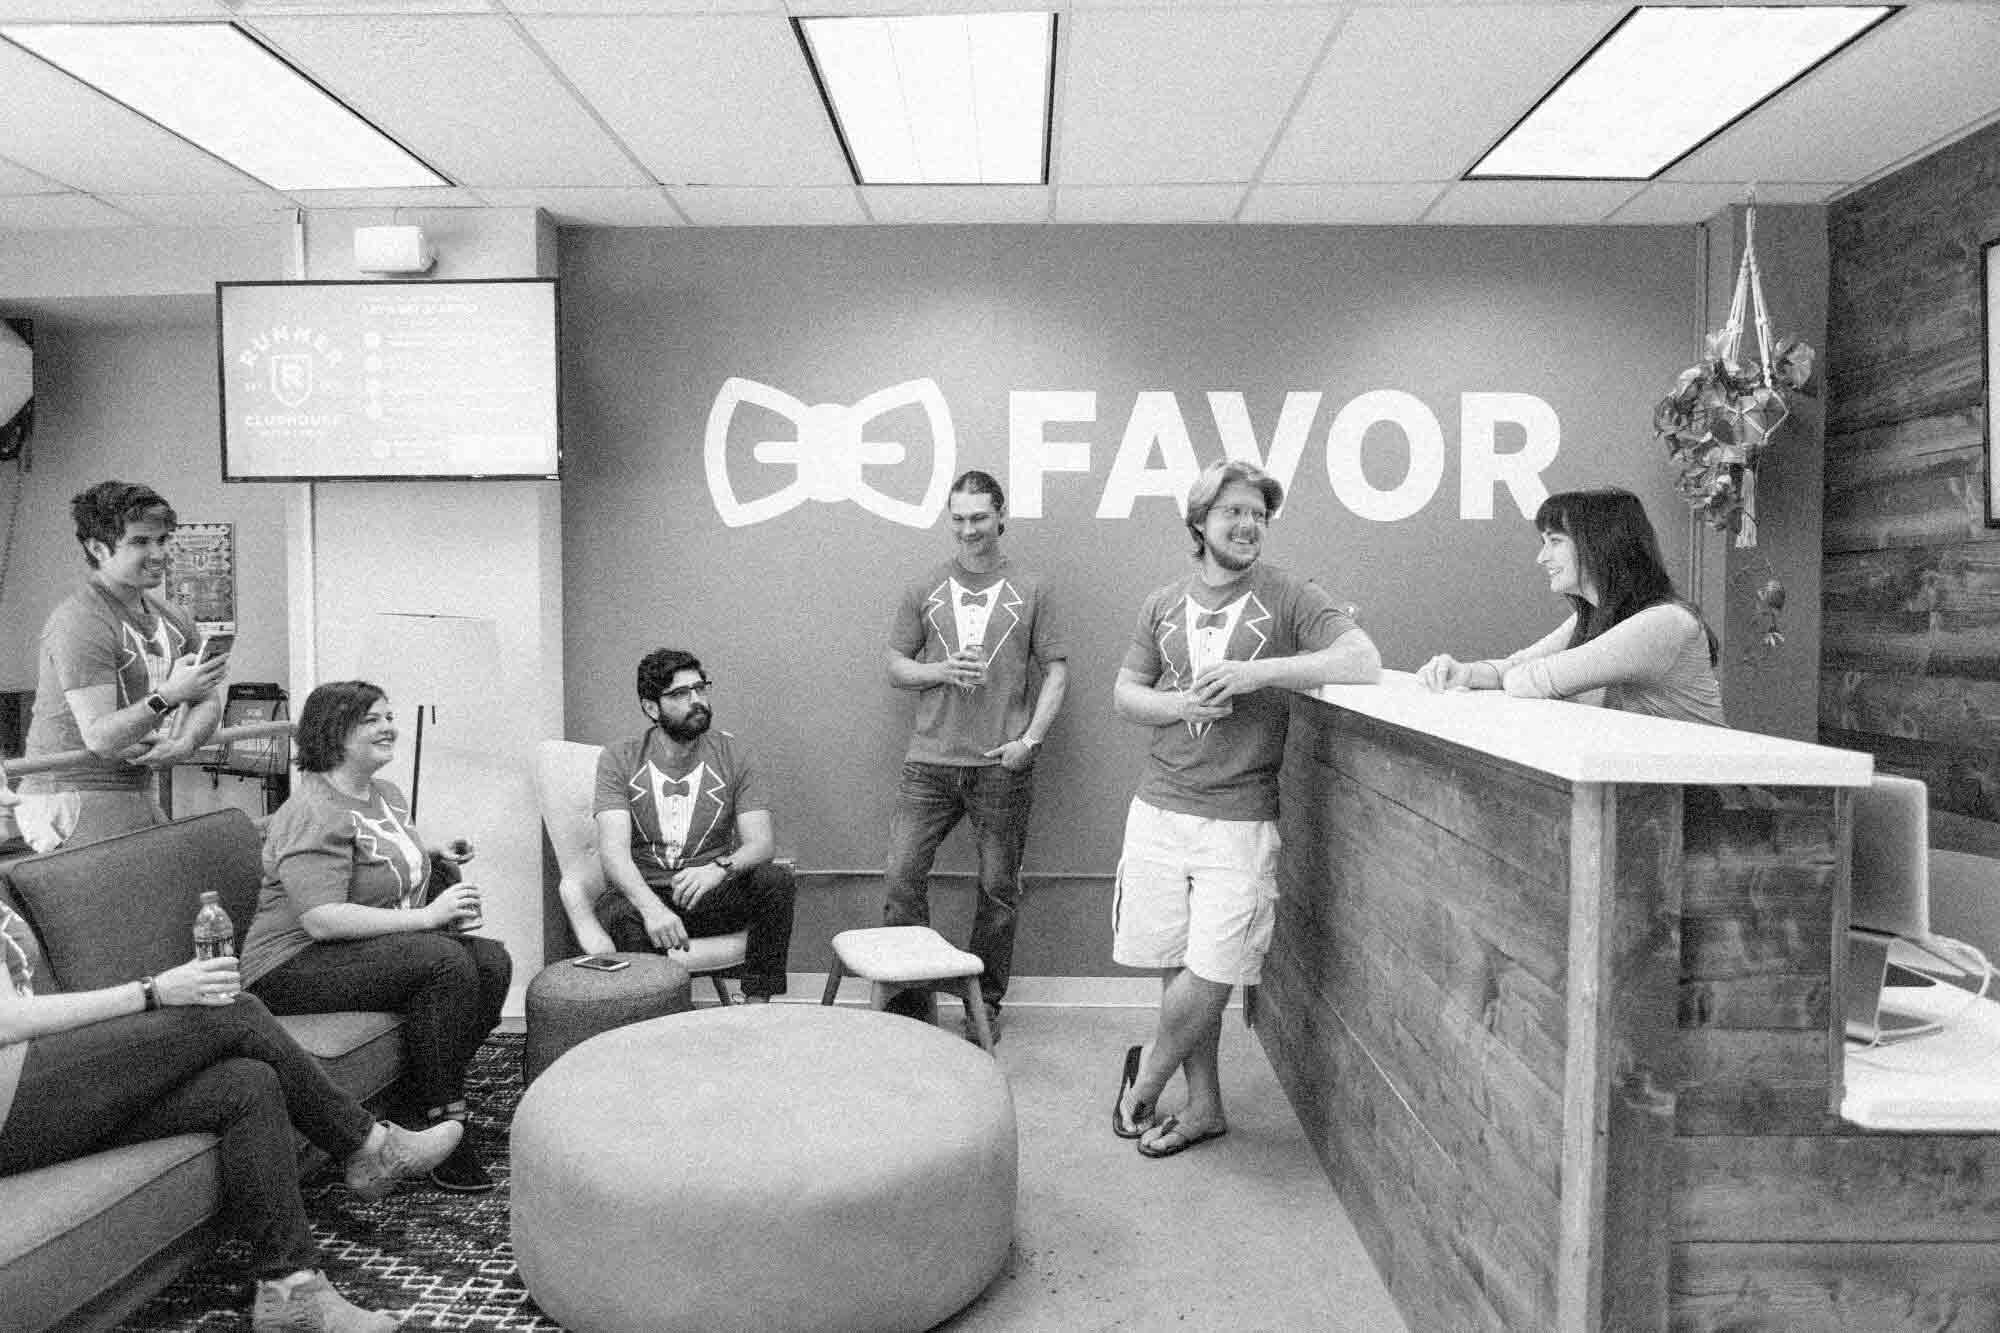 Four Days at Favor